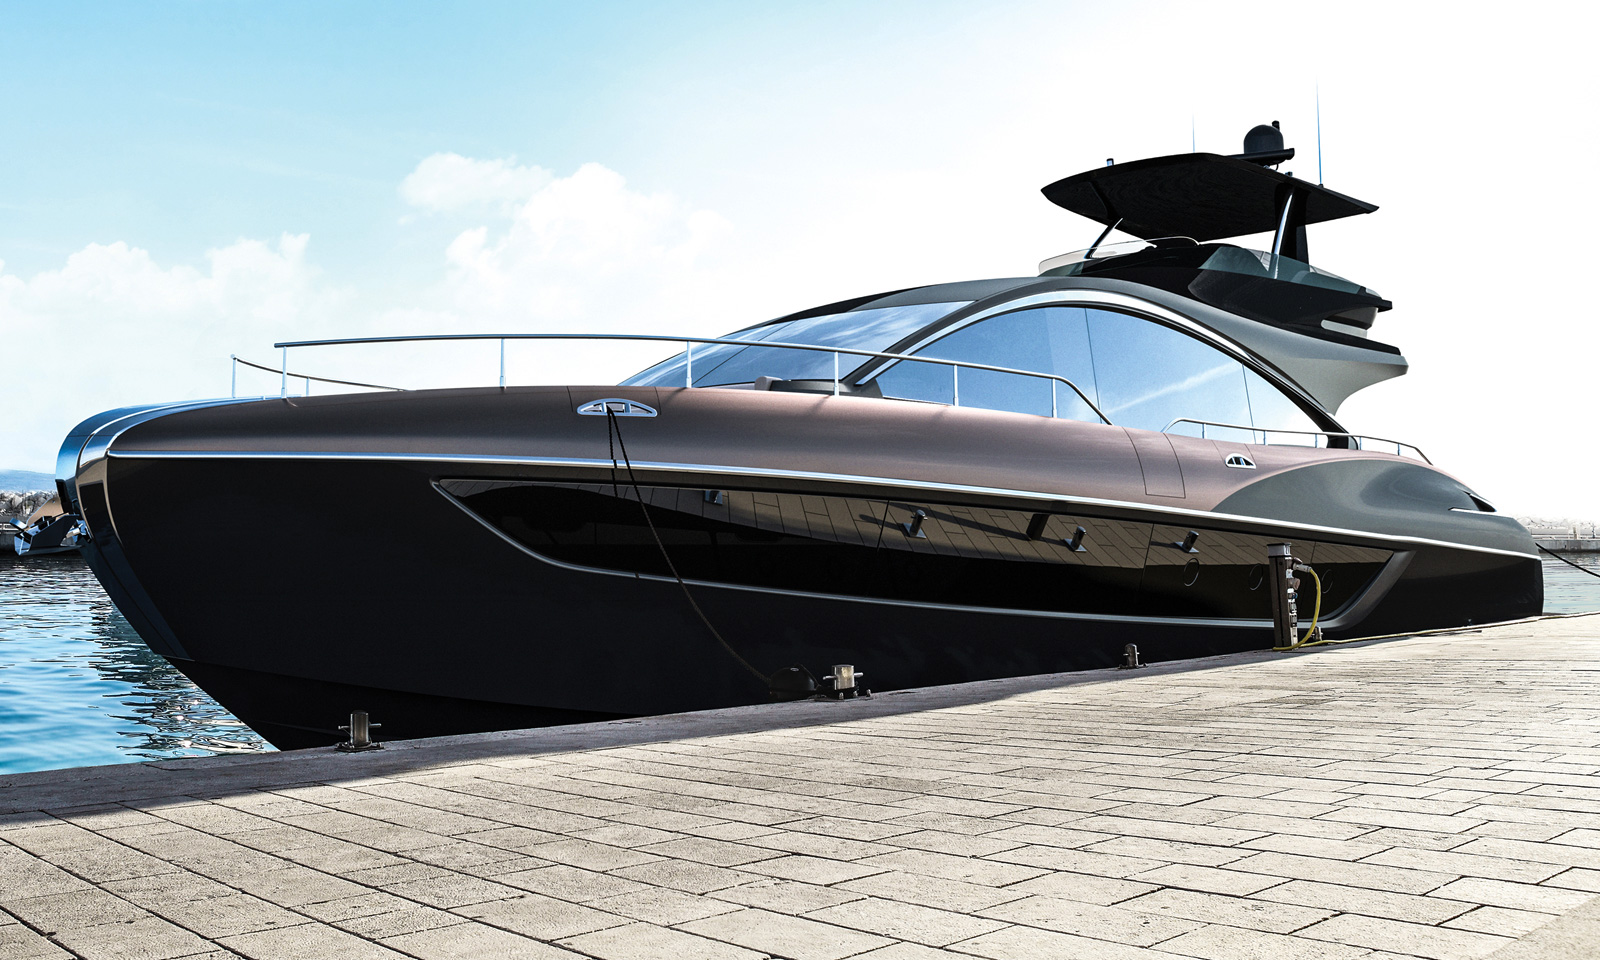 The 65-foot Lexus LY 650 Luxury Yacht